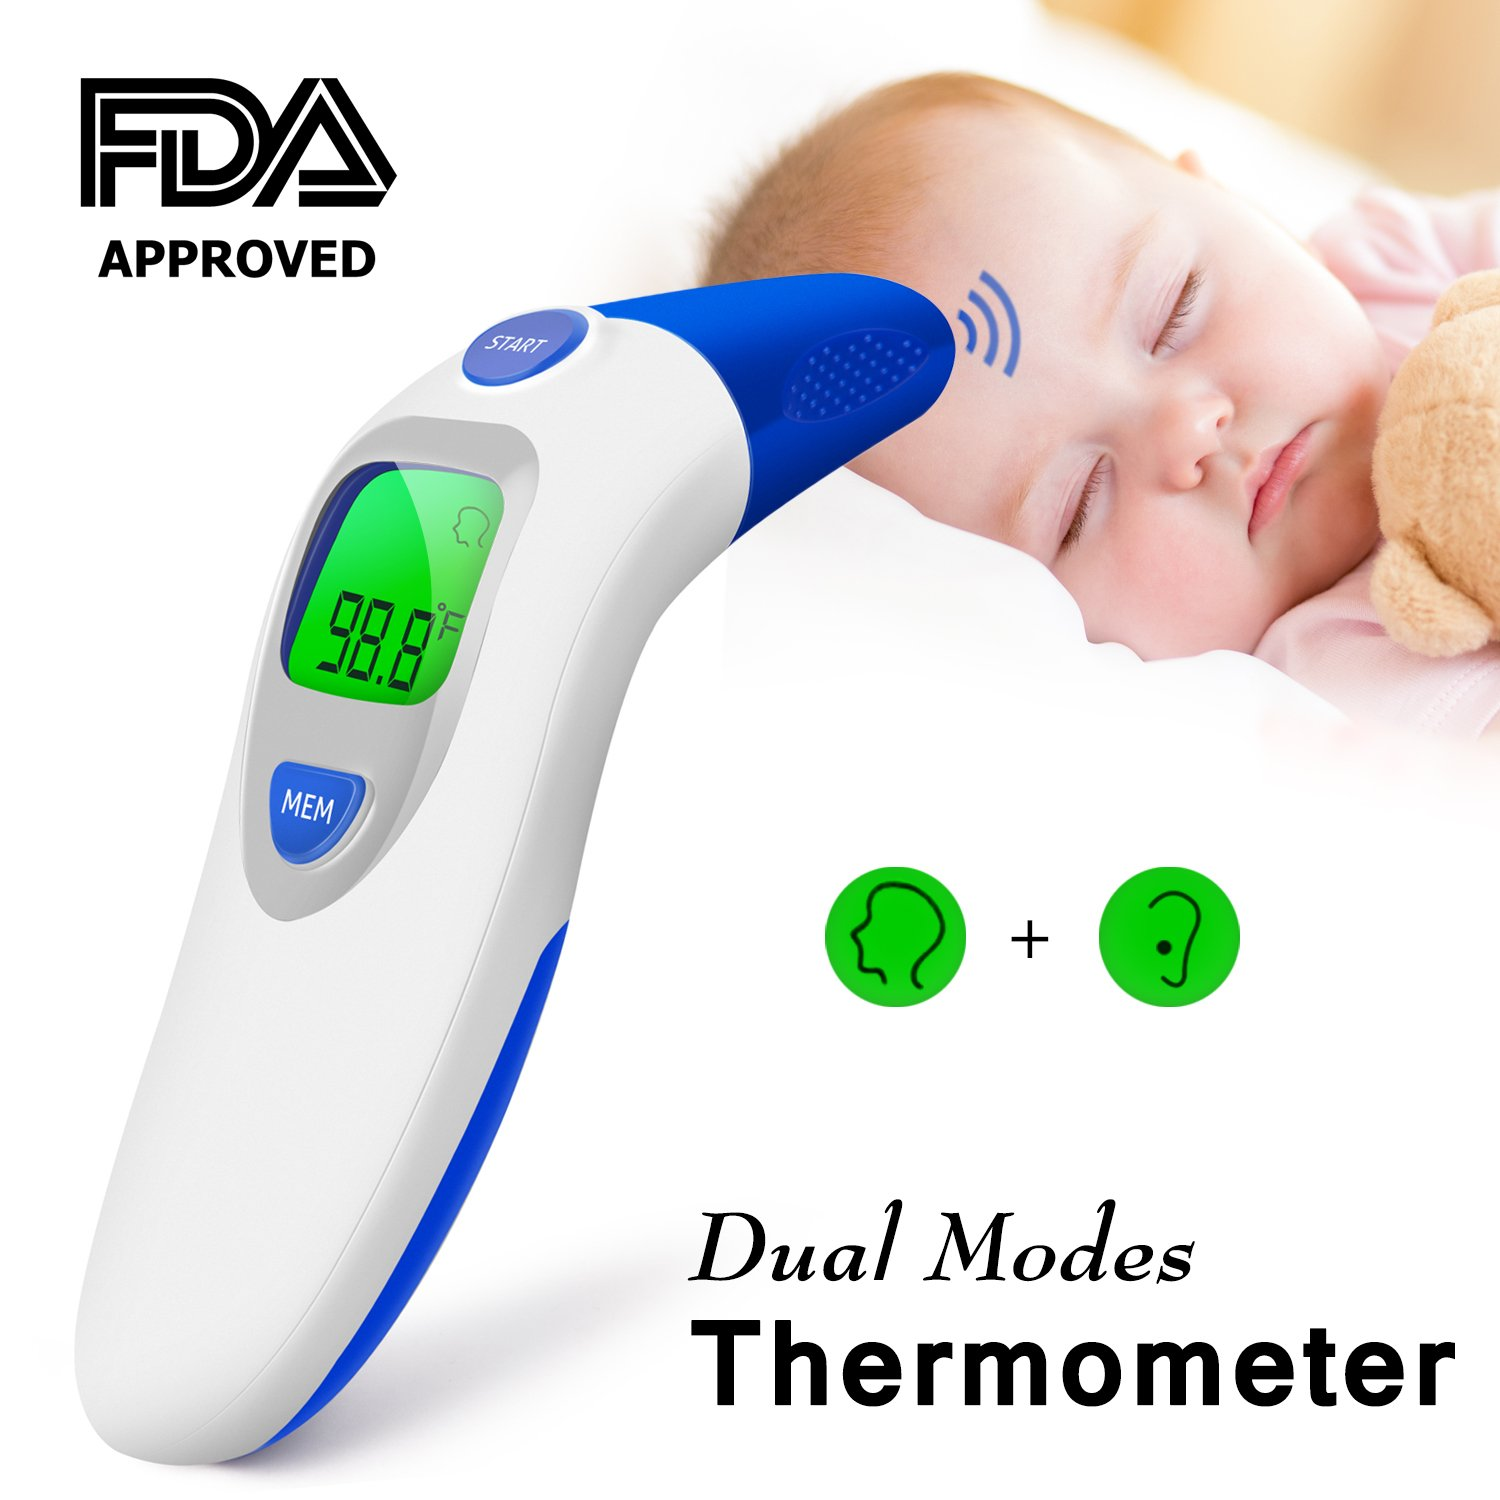 Dual Mode Forehead Thermometer, ideske Digital Display,Contactless  Ear Thermometer for Home Care, With FDA Certificate